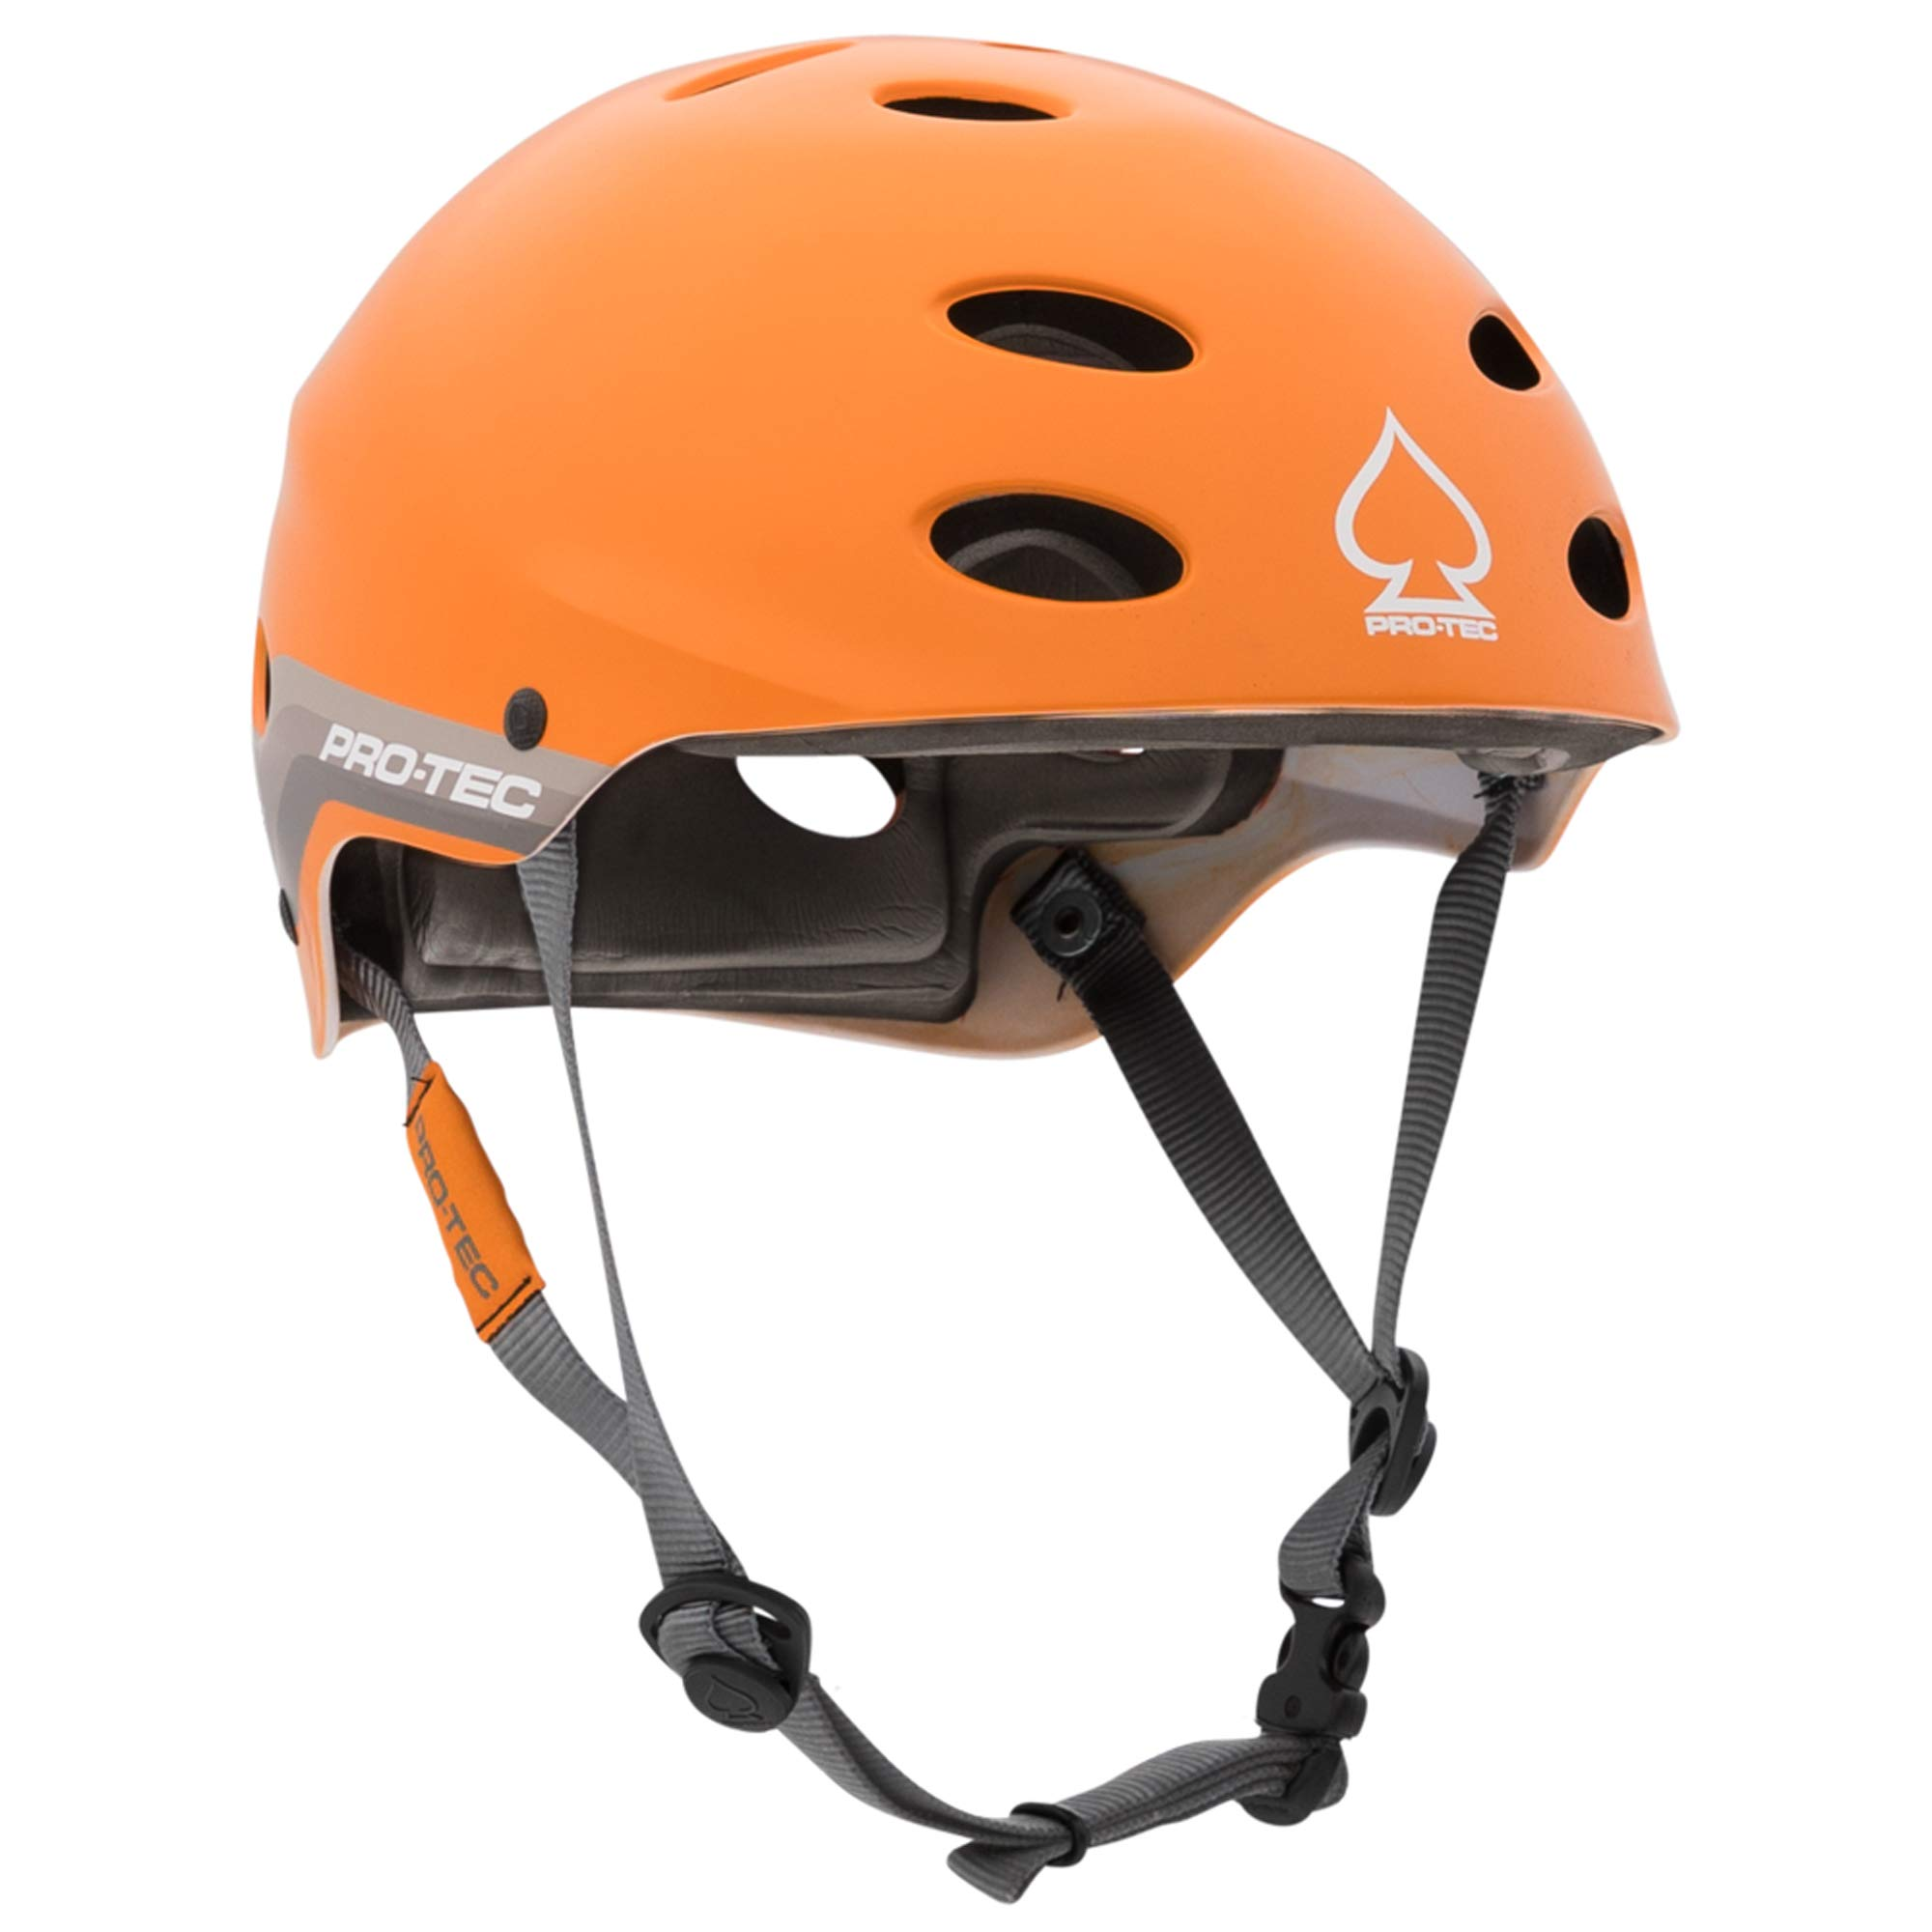 Pro-Tec - Ace Water Helmet, Satin Orange Retro, L by Pro-Tec